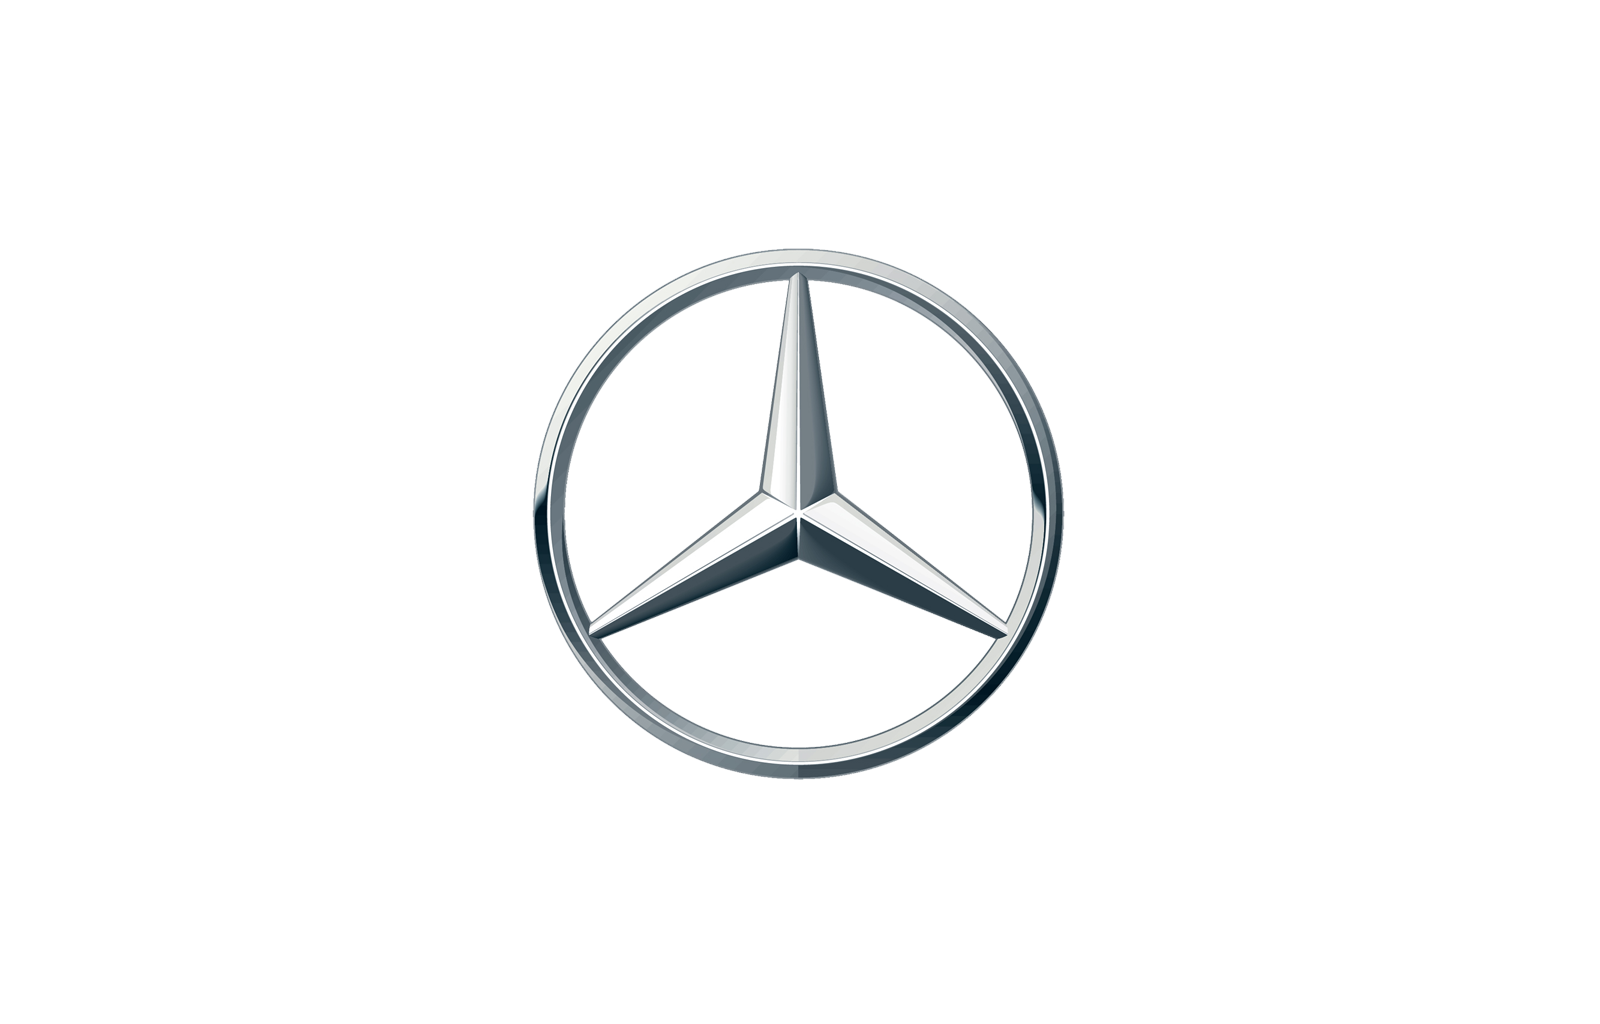 Image for Mercedes Benz Logo Vector Free Download.